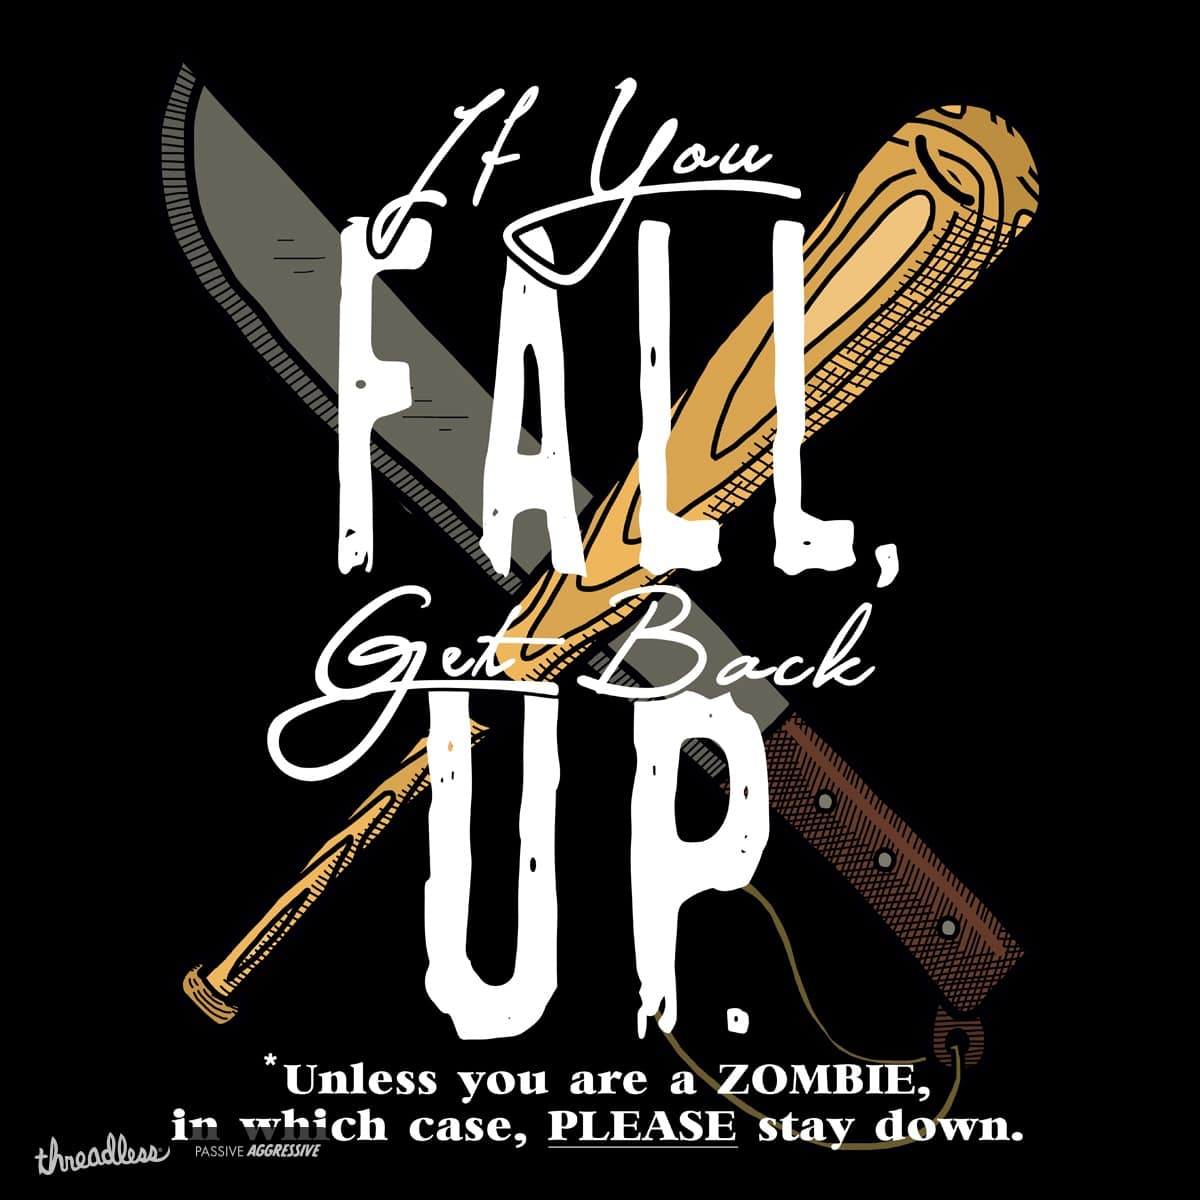 Zombie Hunter's Motto by HIDENbehindAroc on Threadless